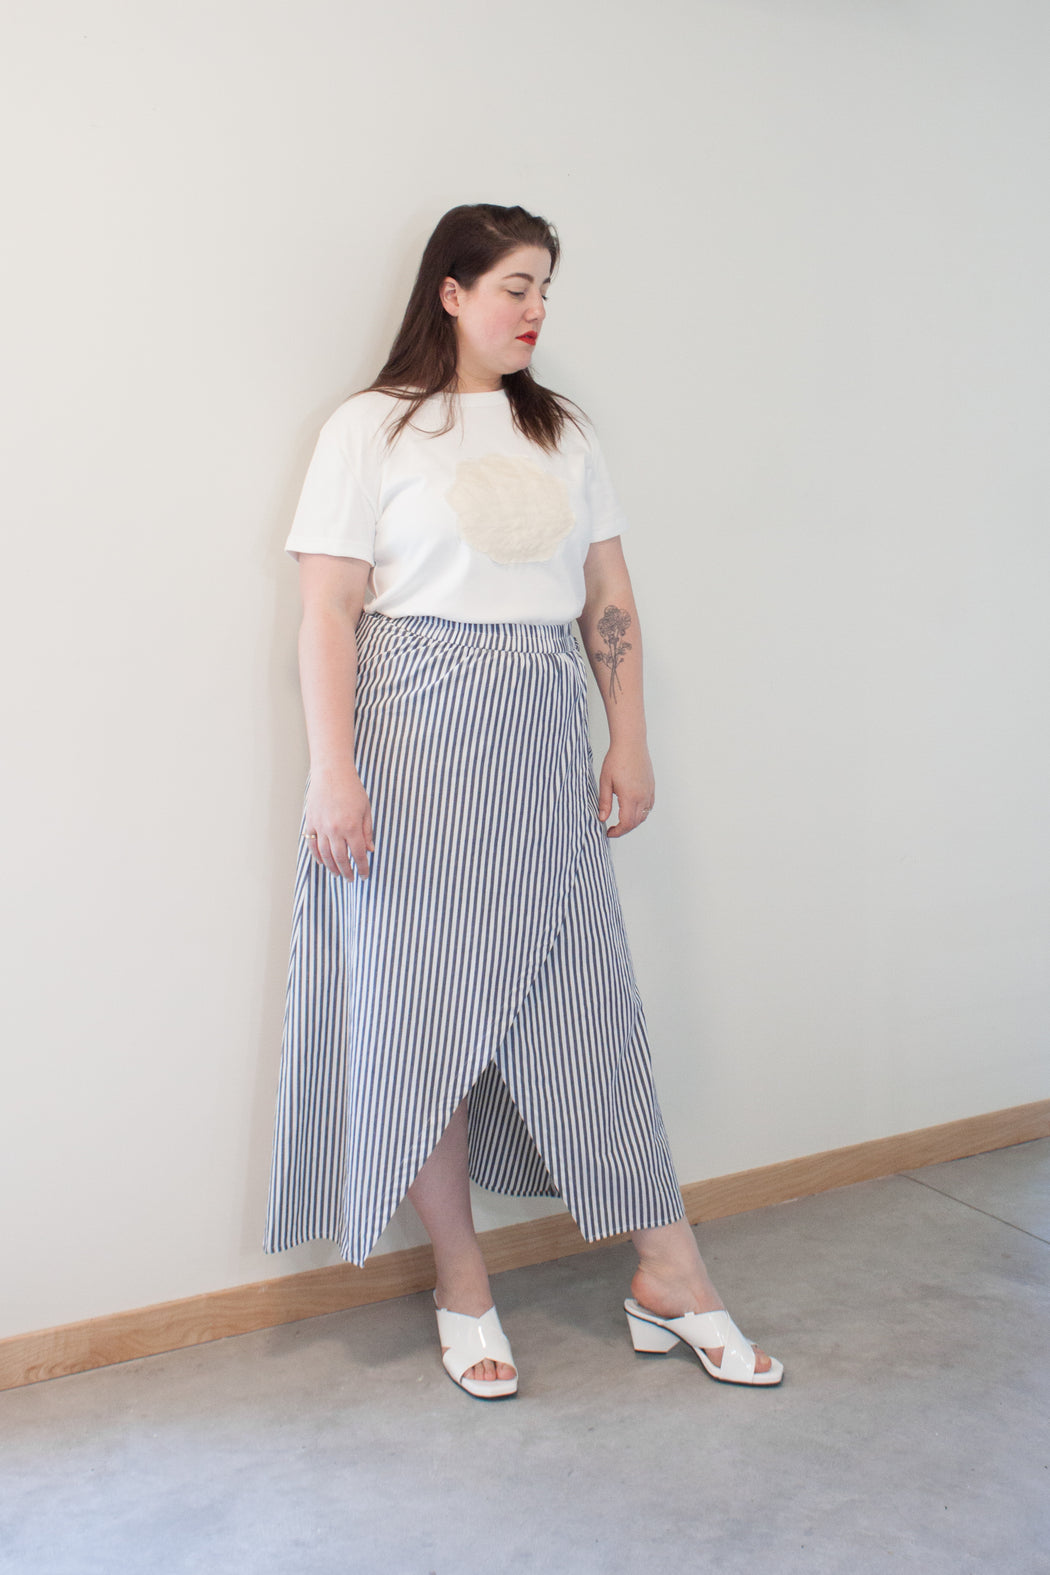 Plus Size Layer Skirt